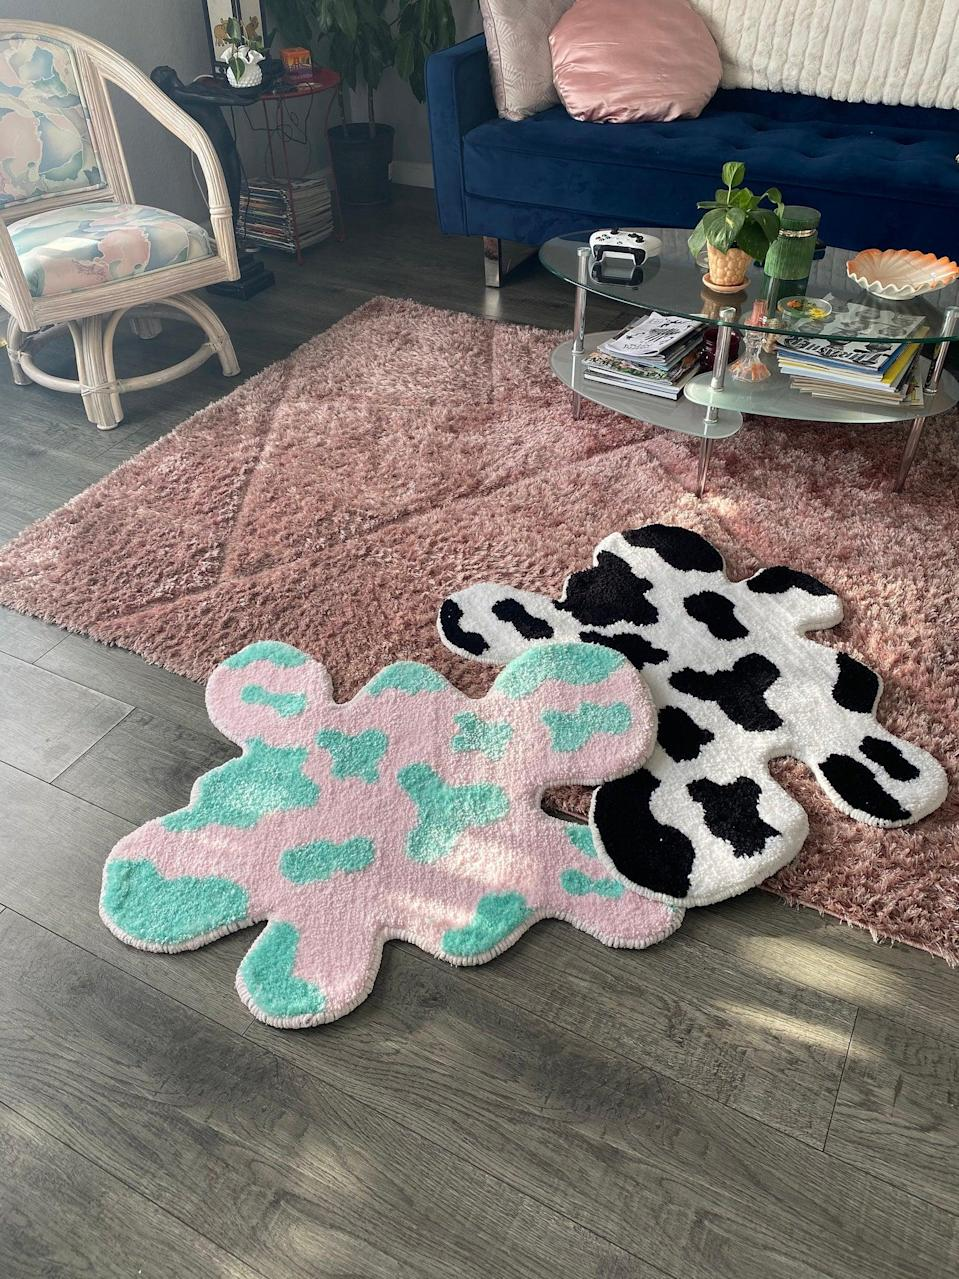 "<h2>Twotwentytwohome Cow Print Rug</h2><br>Whether you like the classic cow print or a jazzy colorful twist, this rug is a statement piece all the way. Each piece is also handmade to order.<br><br><em>Shop</em> <strong><em><a href=""https://www.etsy.com/shop/twotwentytwohome"" rel=""nofollow noopener"" target=""_blank"" data-ylk=""slk:Twotwentytwohome"" class=""link rapid-noclick-resp"">Twotwentytwohome</a></em></strong><br><br><strong>twotwentytwohome</strong> Cow Print Rug, $, available at <a href=""https://go.skimresources.com/?id=30283X879131&url=https%3A%2F%2Fwww.etsy.com%2Flisting%2F989038933%2Fcow-print-rug"" rel=""nofollow noopener"" target=""_blank"" data-ylk=""slk:Etsy"" class=""link rapid-noclick-resp"">Etsy</a>"